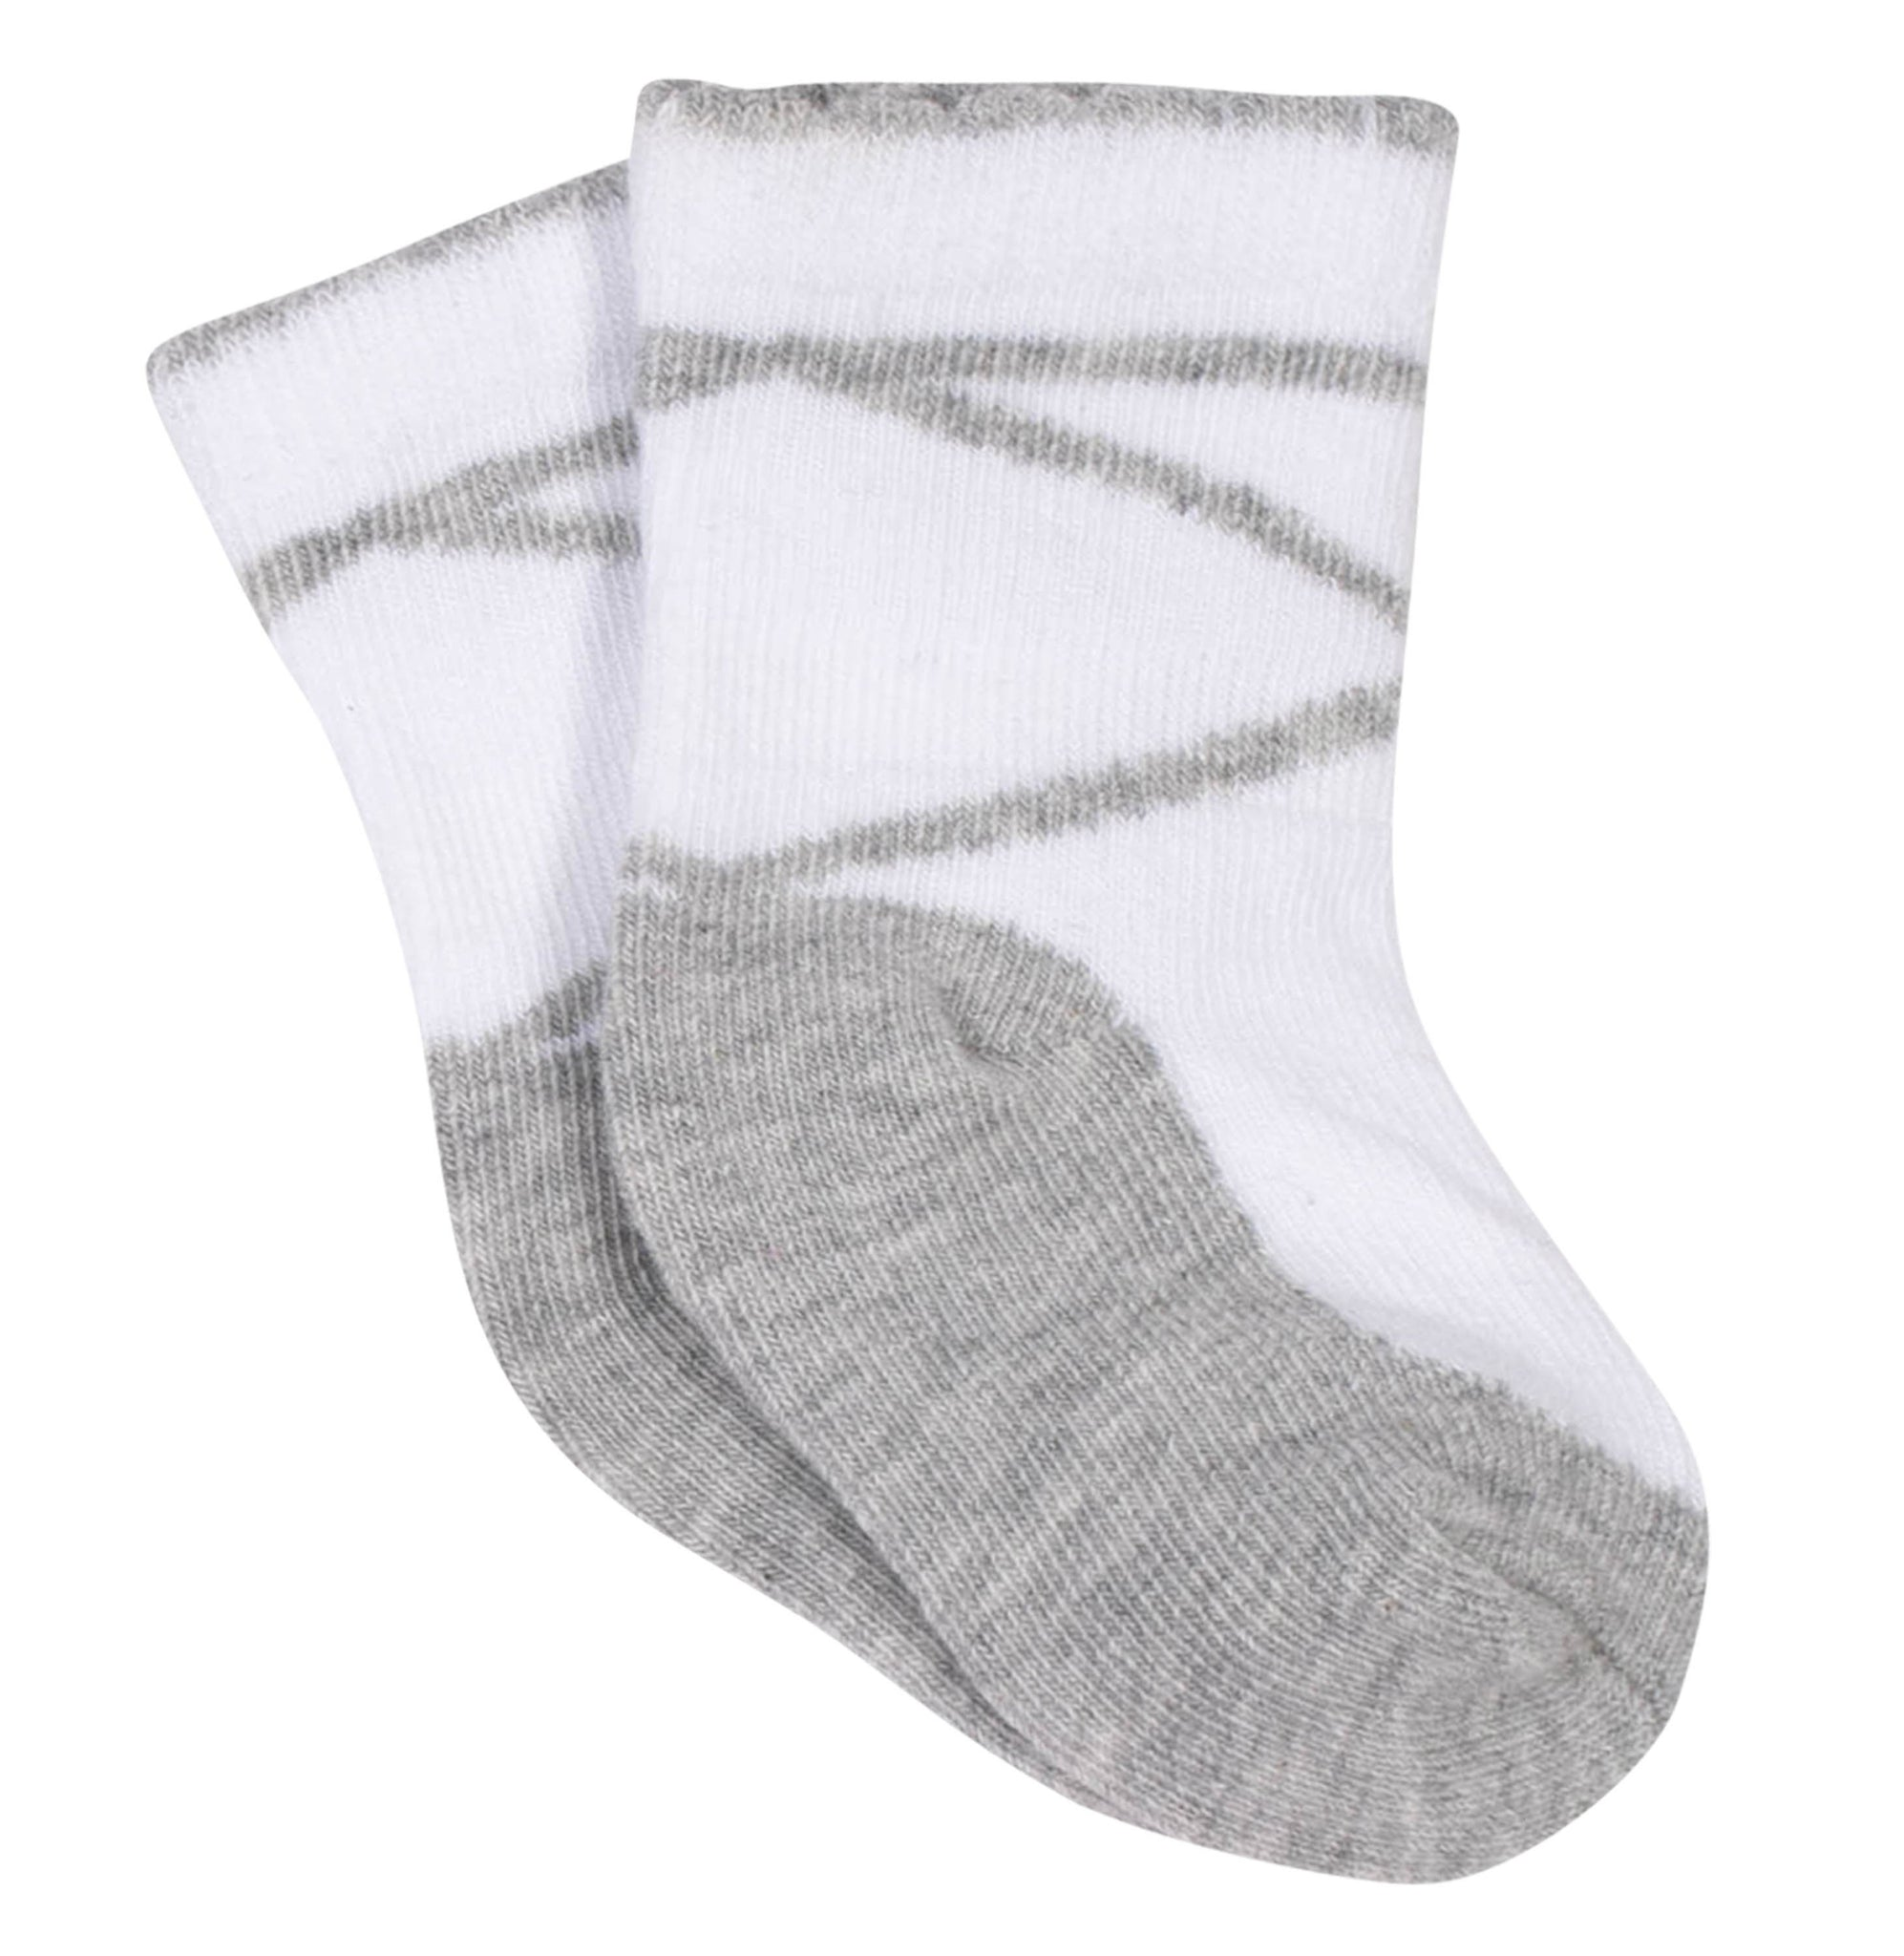 Girls' 8-Pack Wiggle Proof Jersey Crew Socks - Grey Heather